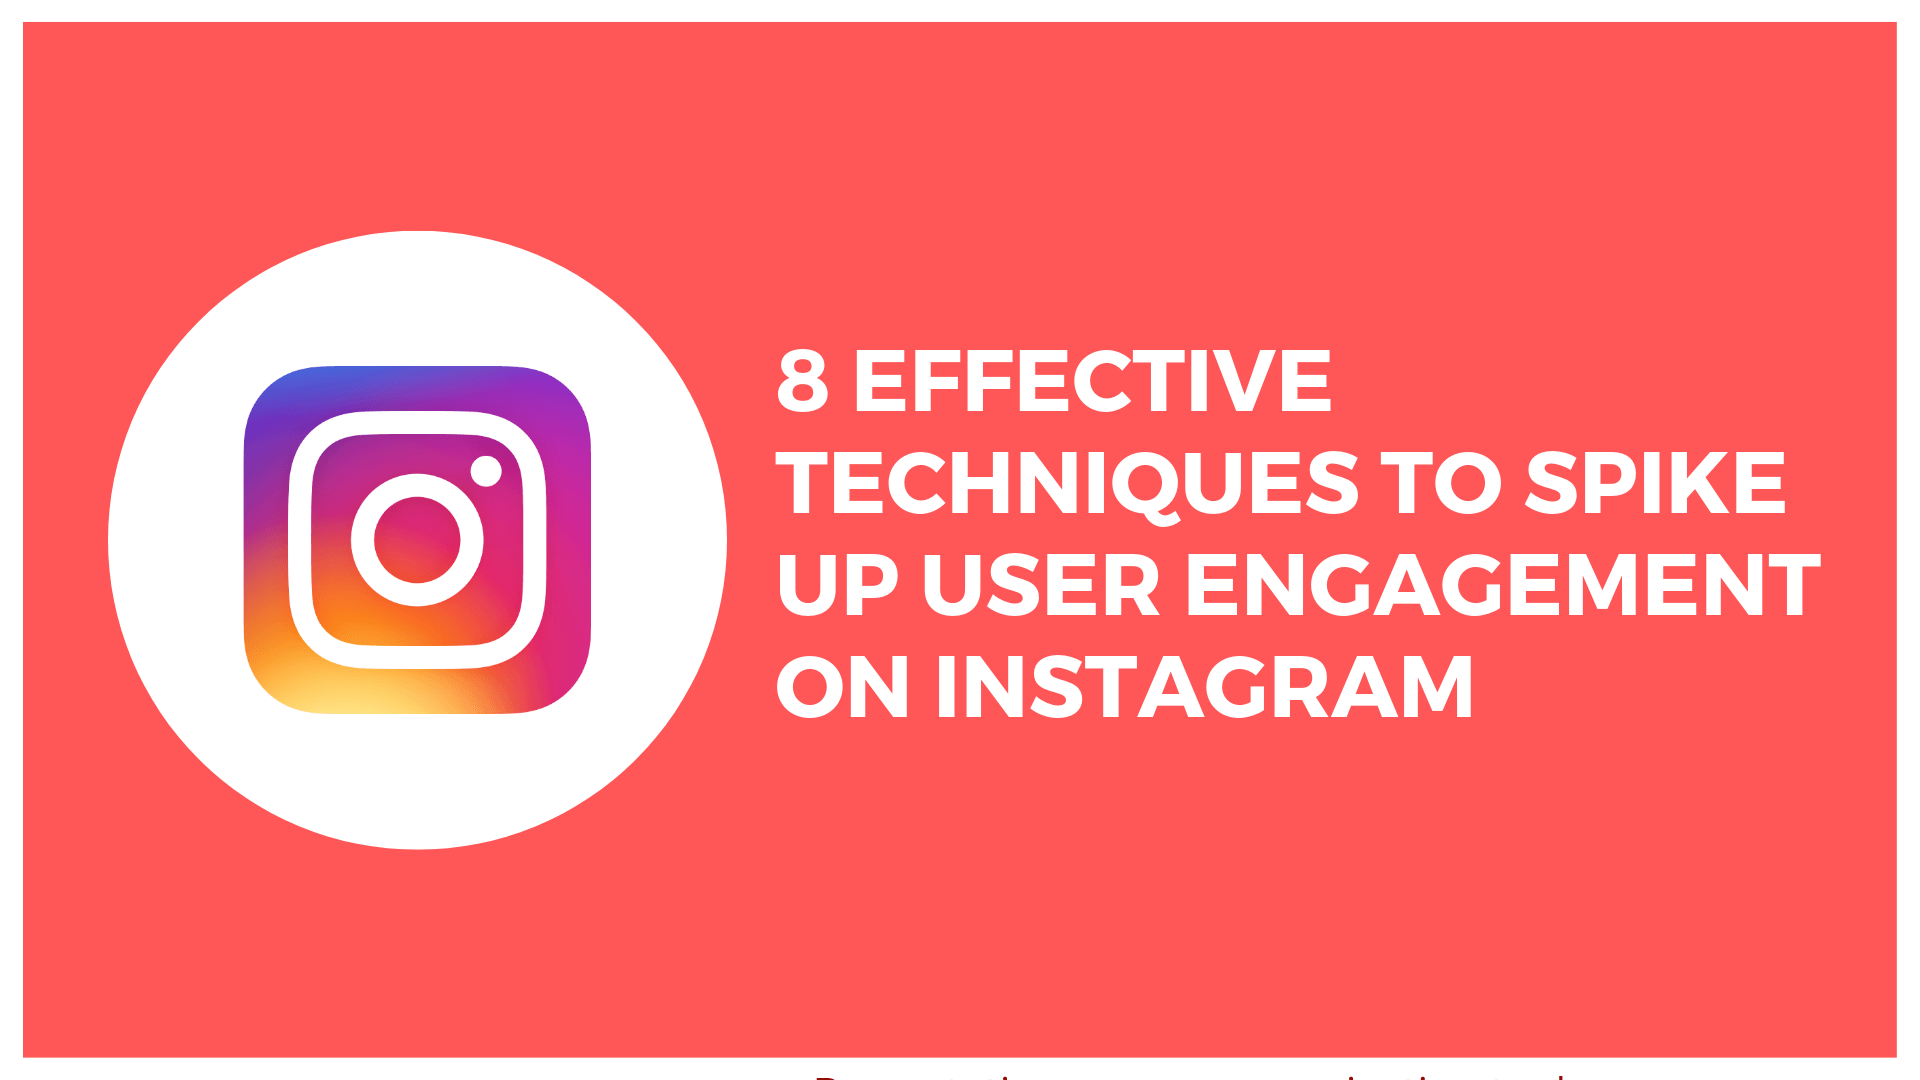 8 Effective Techniques To Spike Up User Engagement On Instagram